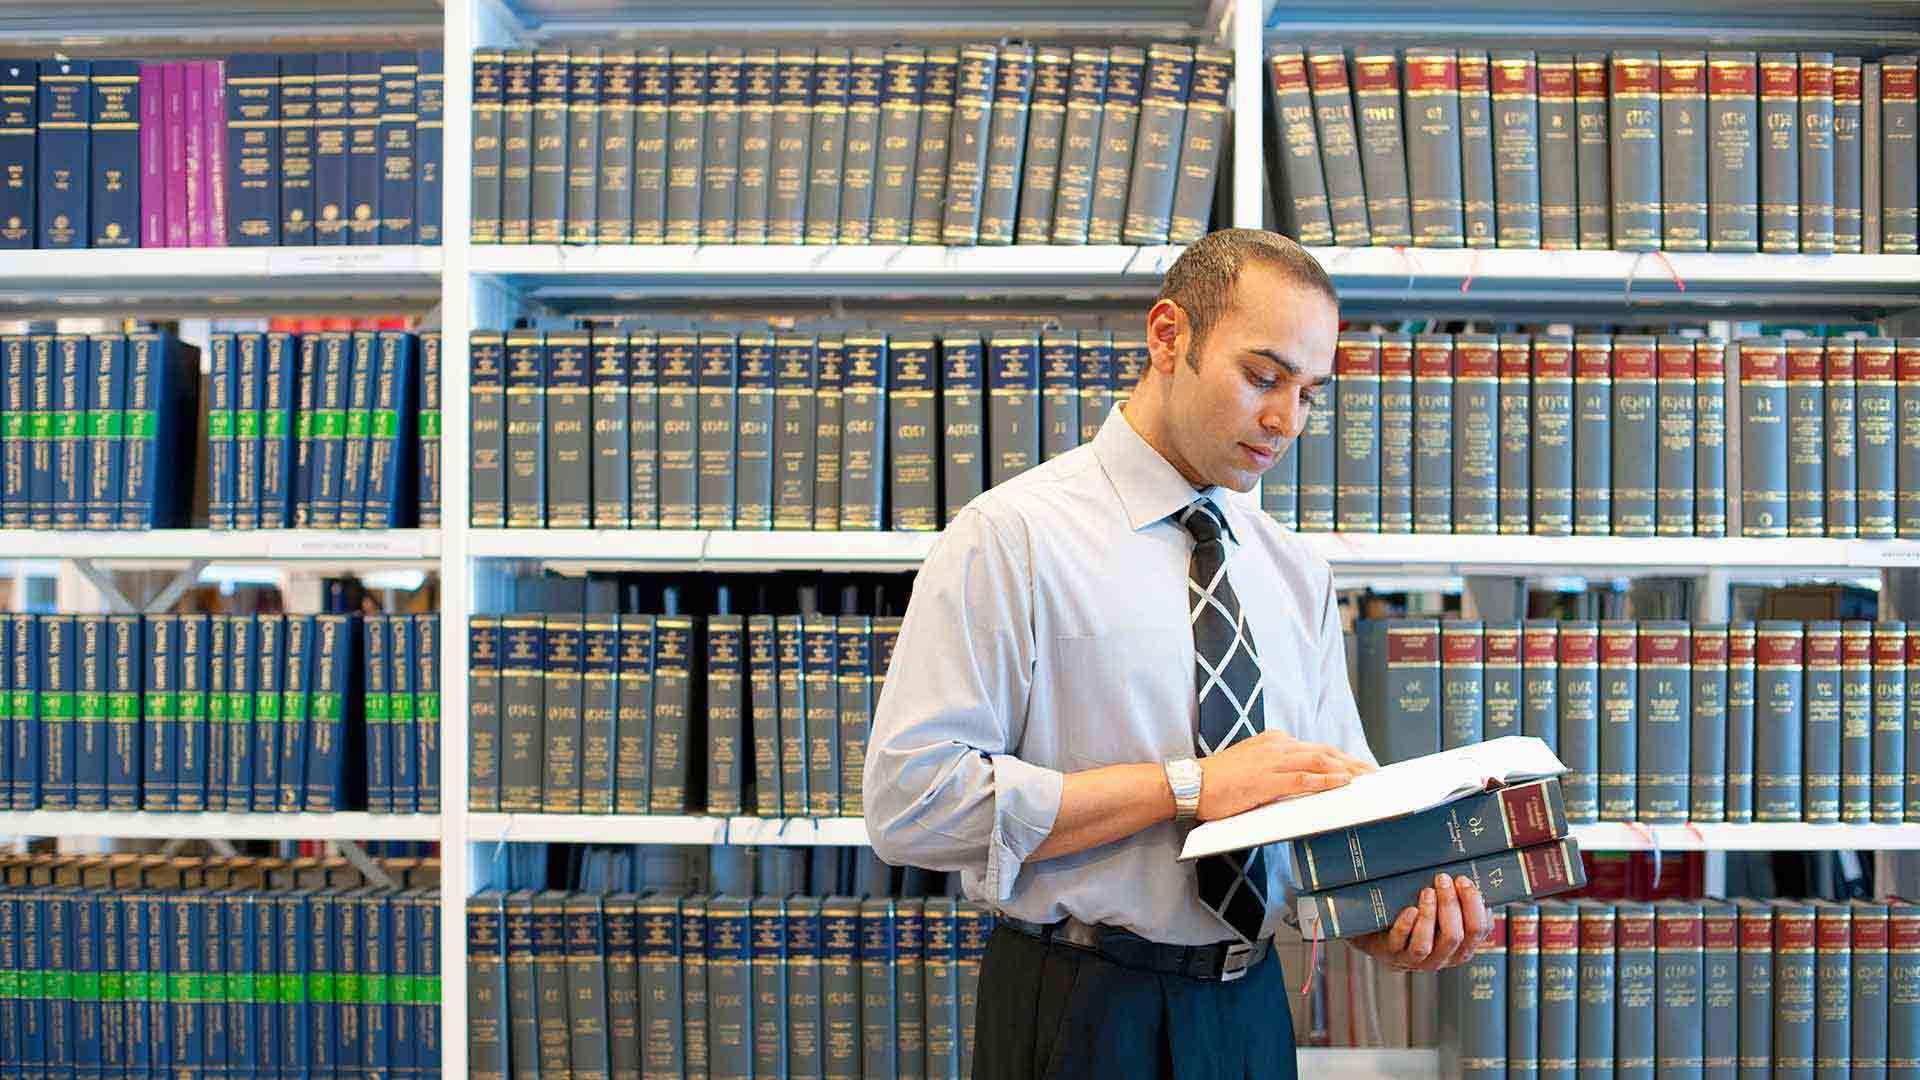 Man reading a book in a law library.